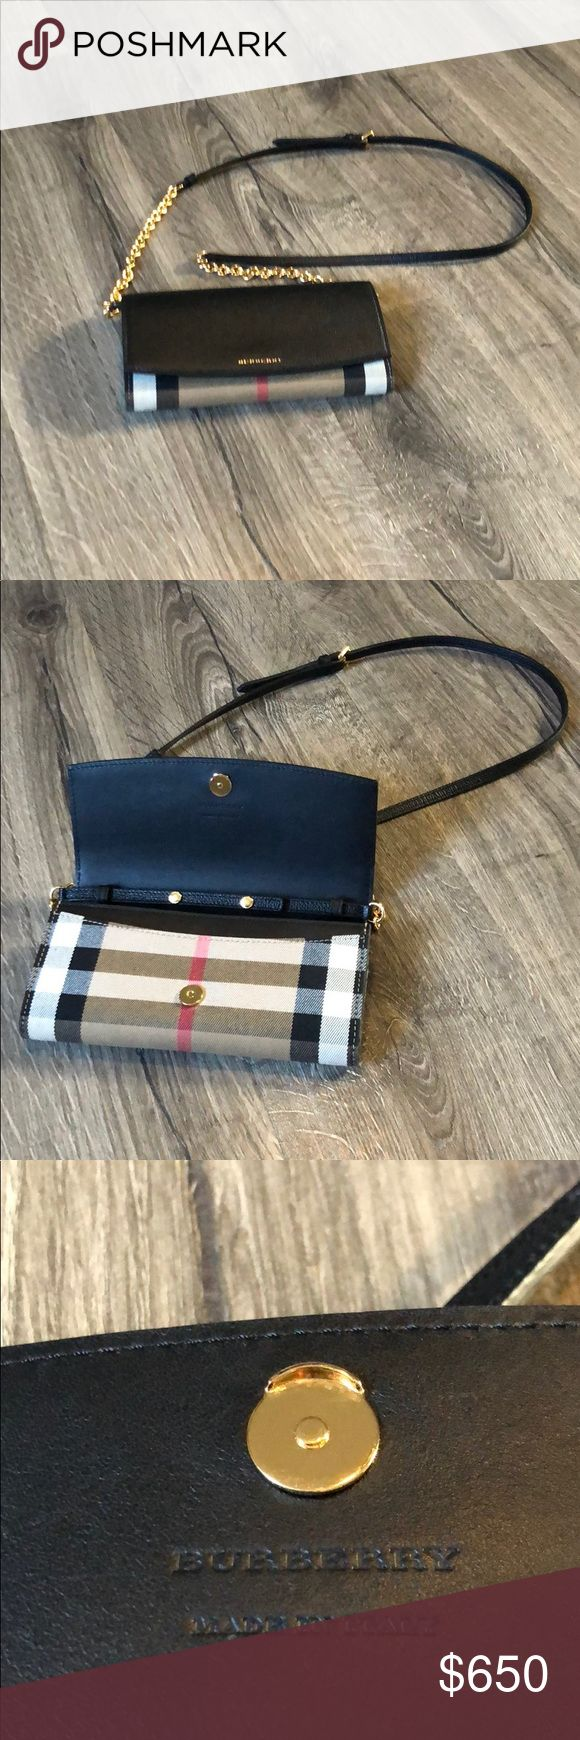 Burberry clutch/ wallet Authentic, comes with dust bag, box and gift bag. u can use it as a clutch or a wallet. The strap is removable. U can see more pictures at Burberry website. Retails 695 dollars plus tax Burberry Bags Clutches & Wristlets